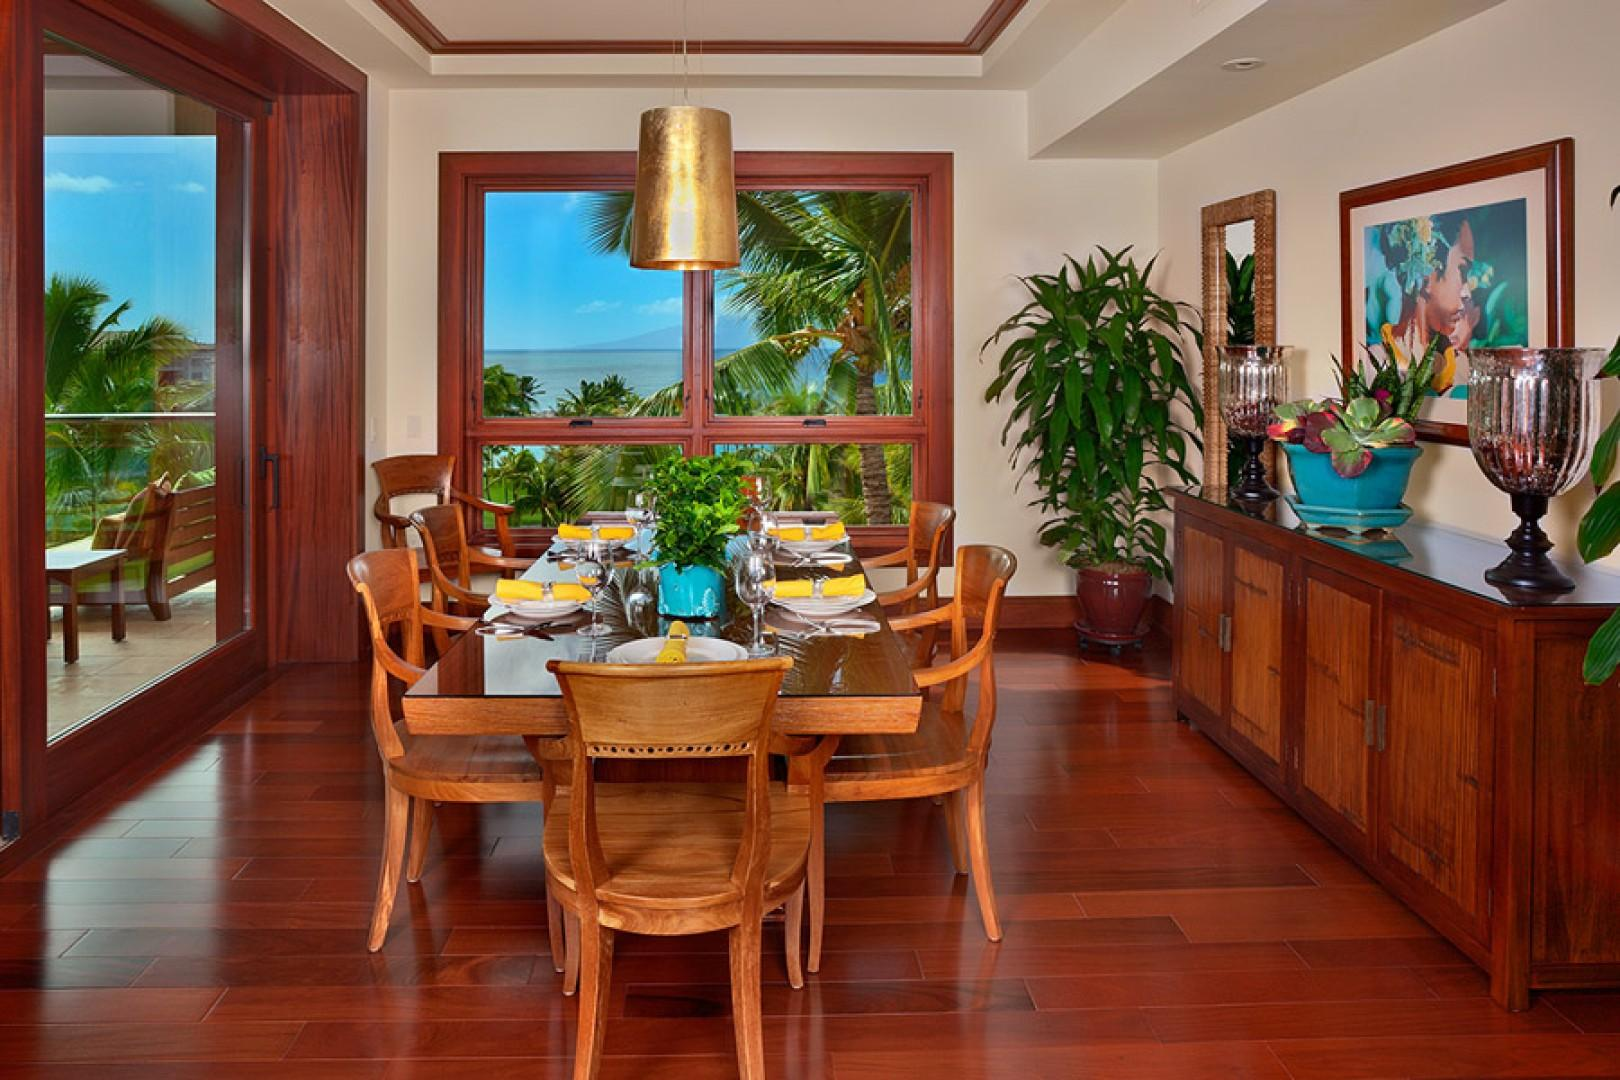 Sea Mist Villa 2403 - Interior Formal Dining Room with Panoramic Ocean and Resort Views. Can be closed off for private dining.